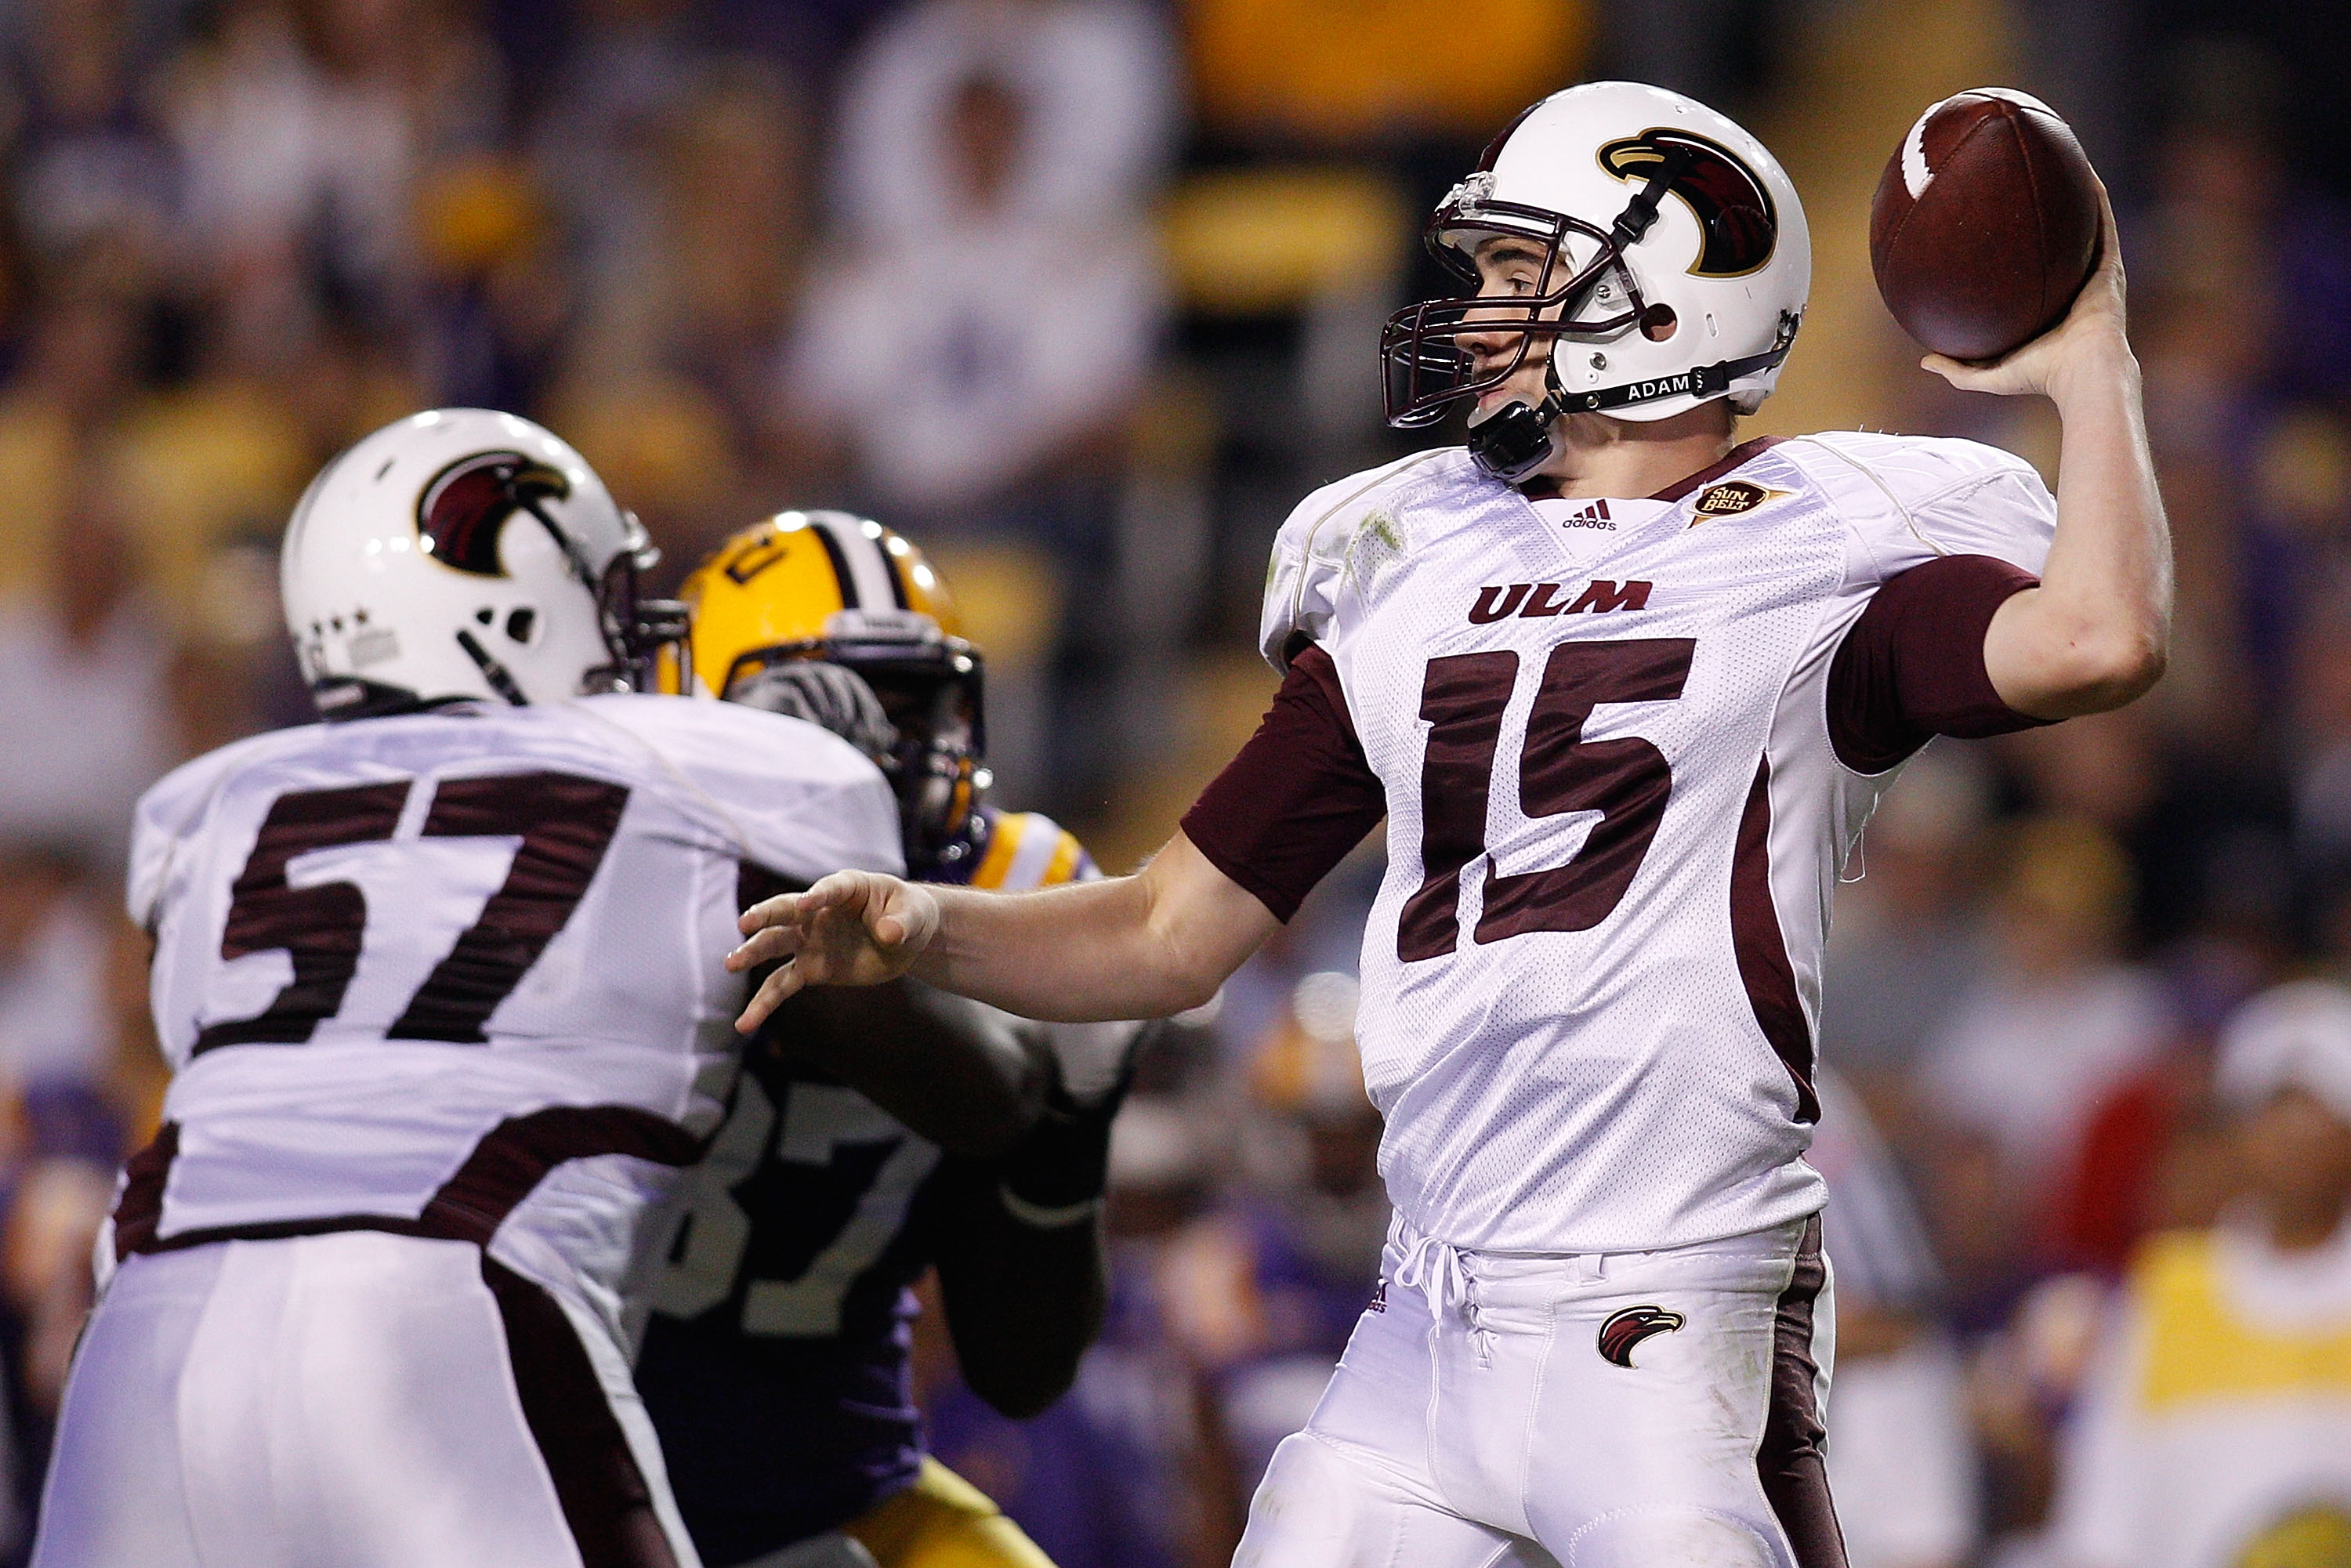 BATON ROUGE, LA - NOVEMBER 13:  Quarterback Kolton Browning #15 of the University of Louisiana-Monroe Warhawks throws a pass during the game against the Louisiana State University Tigers at Tiger Stadium on November 13, 2010 in Baton Rouge, Louisiana.  Th